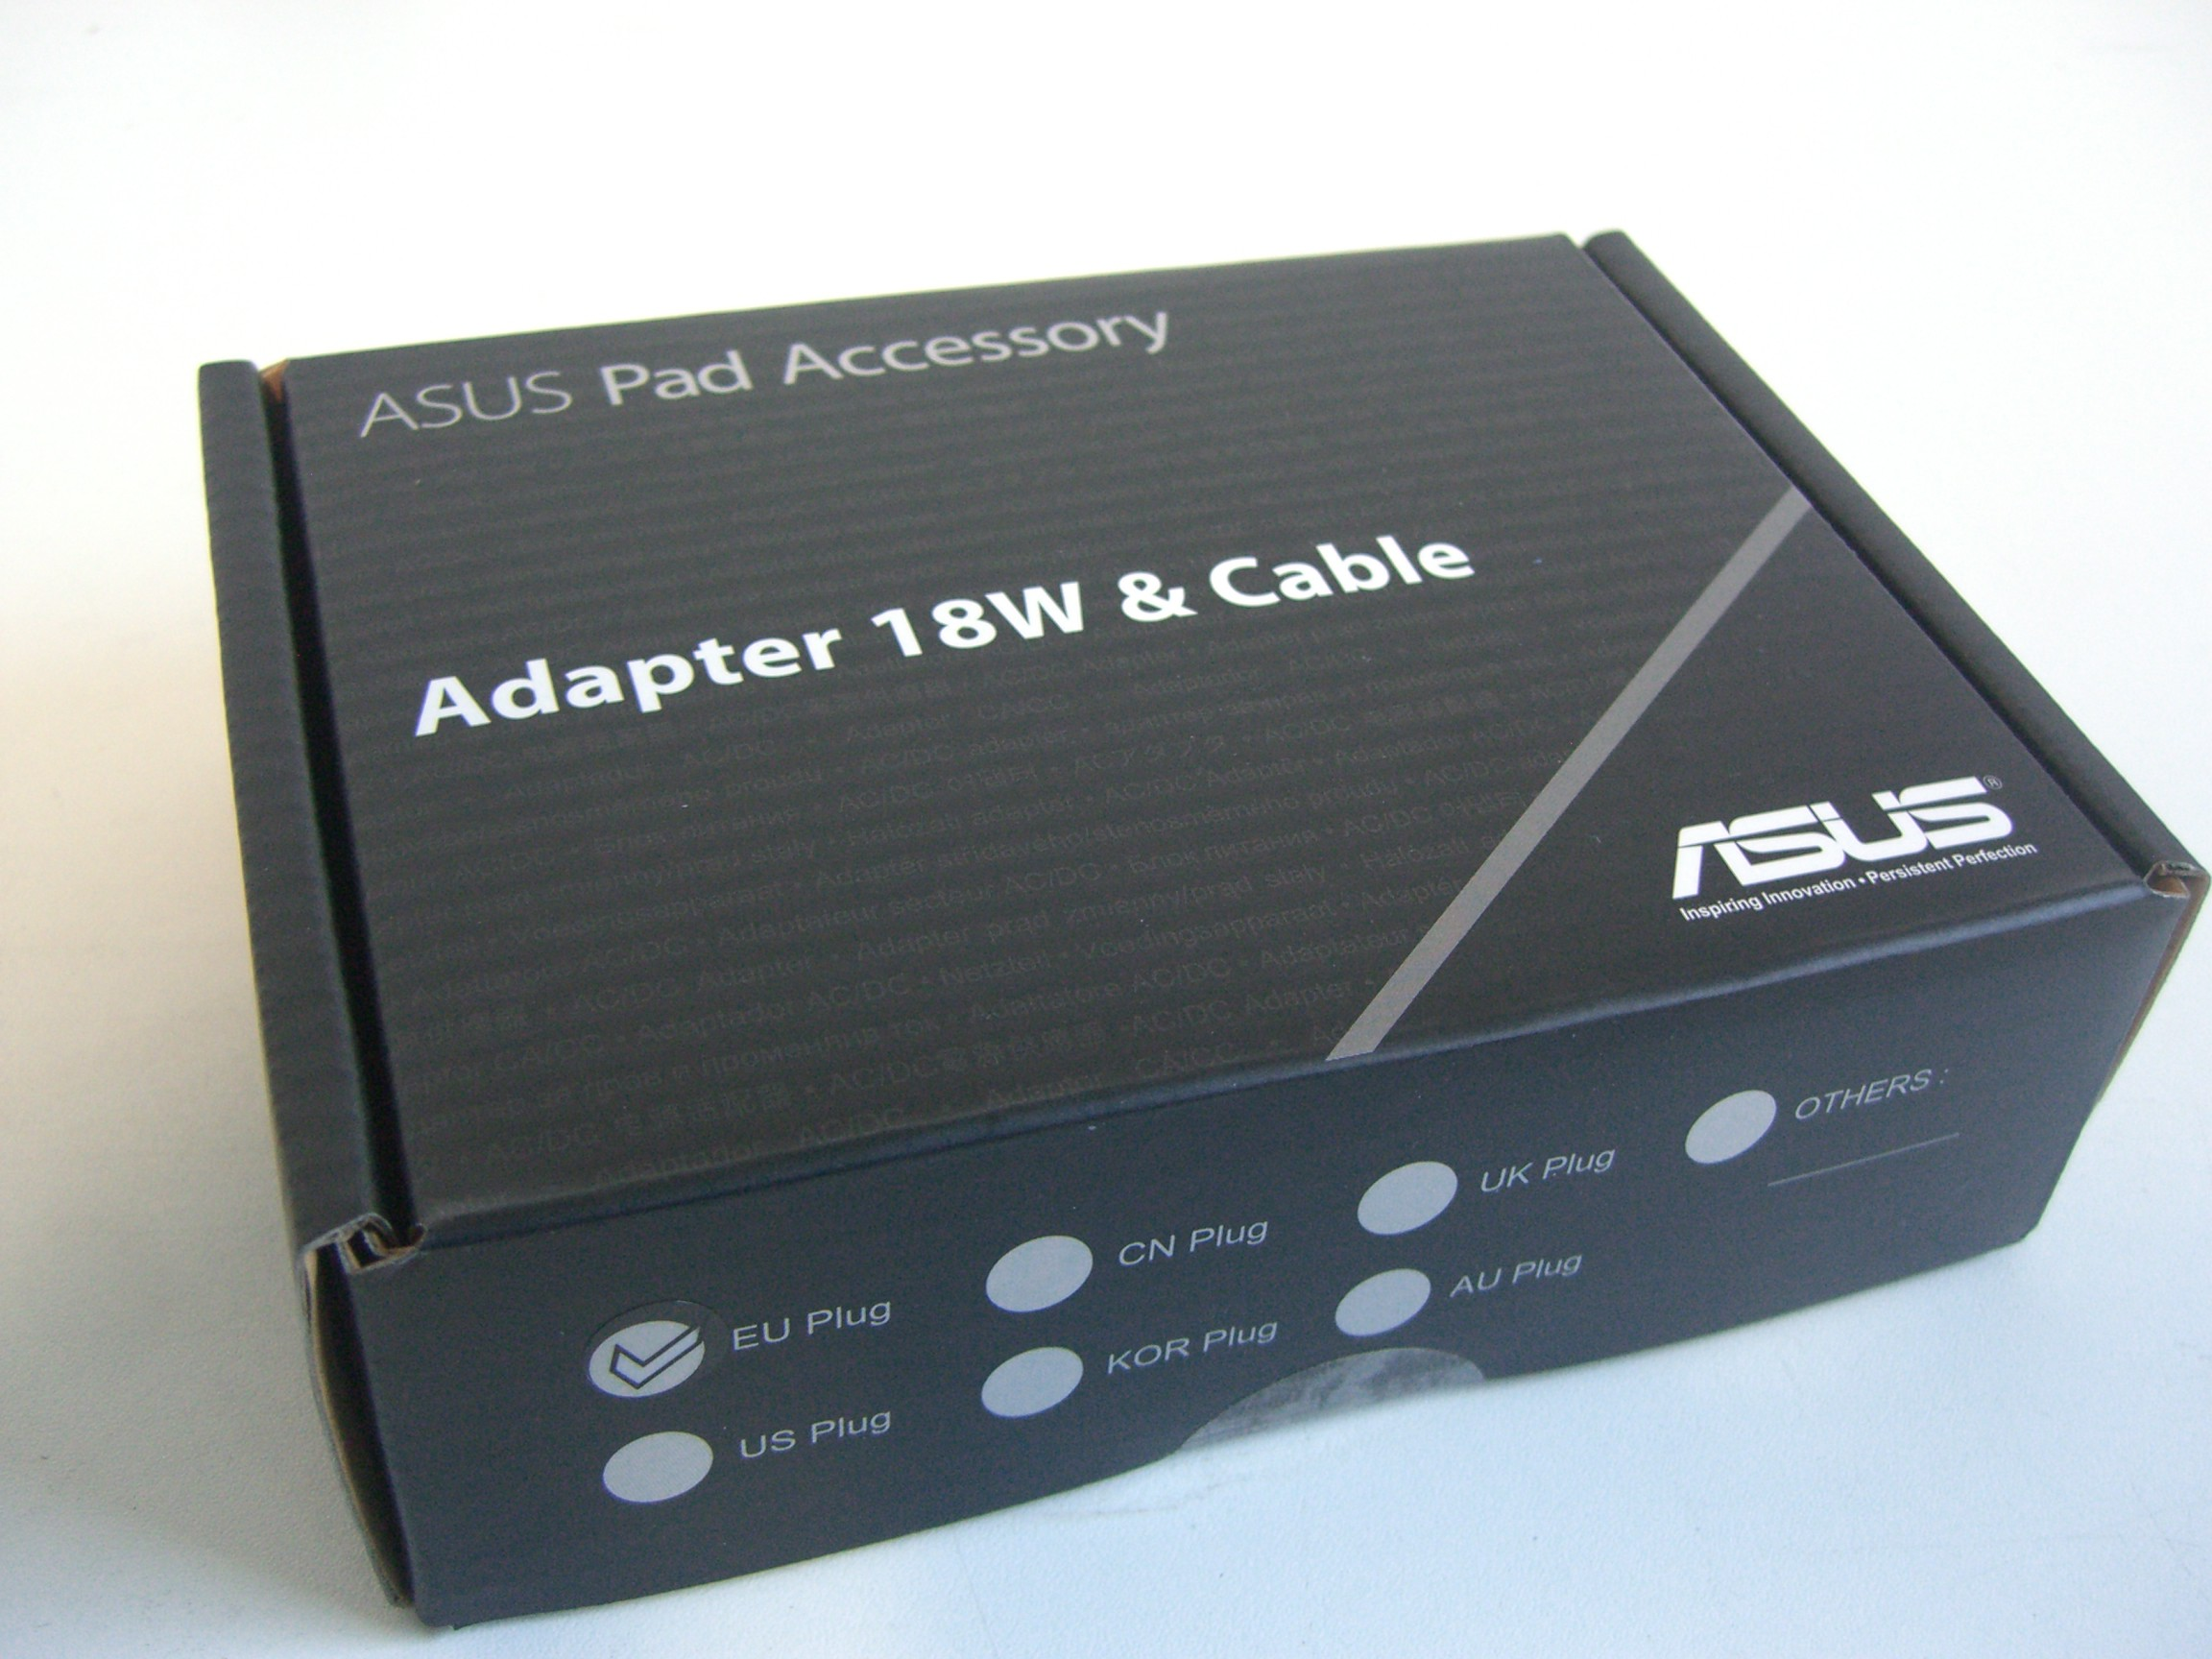 asus adapter 18w cable nexus 7 by asus tablet vivo neu. Black Bedroom Furniture Sets. Home Design Ideas